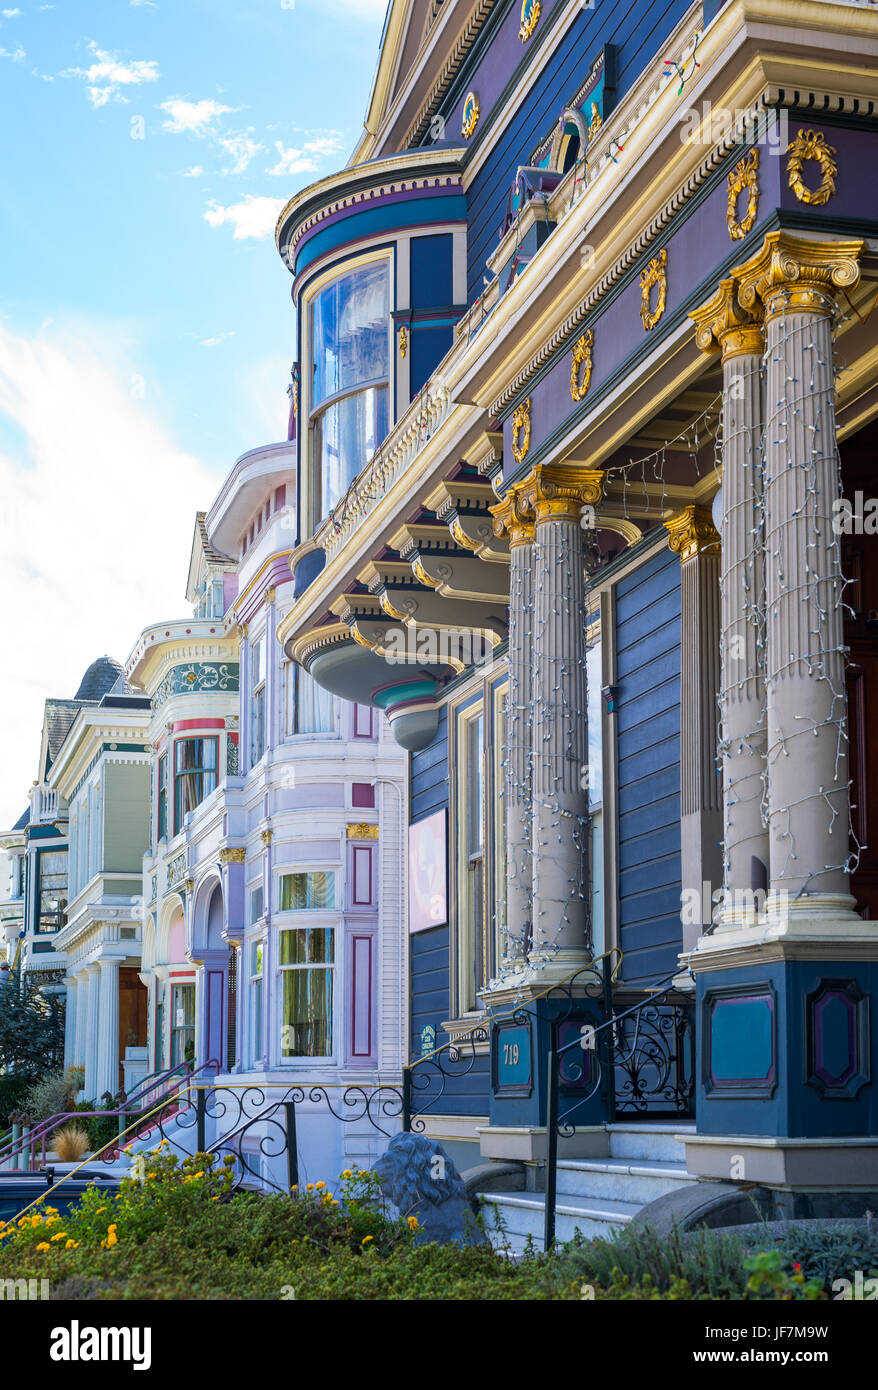 San Francisco, California, the colored traditional houses of Alamo square - Stock Image